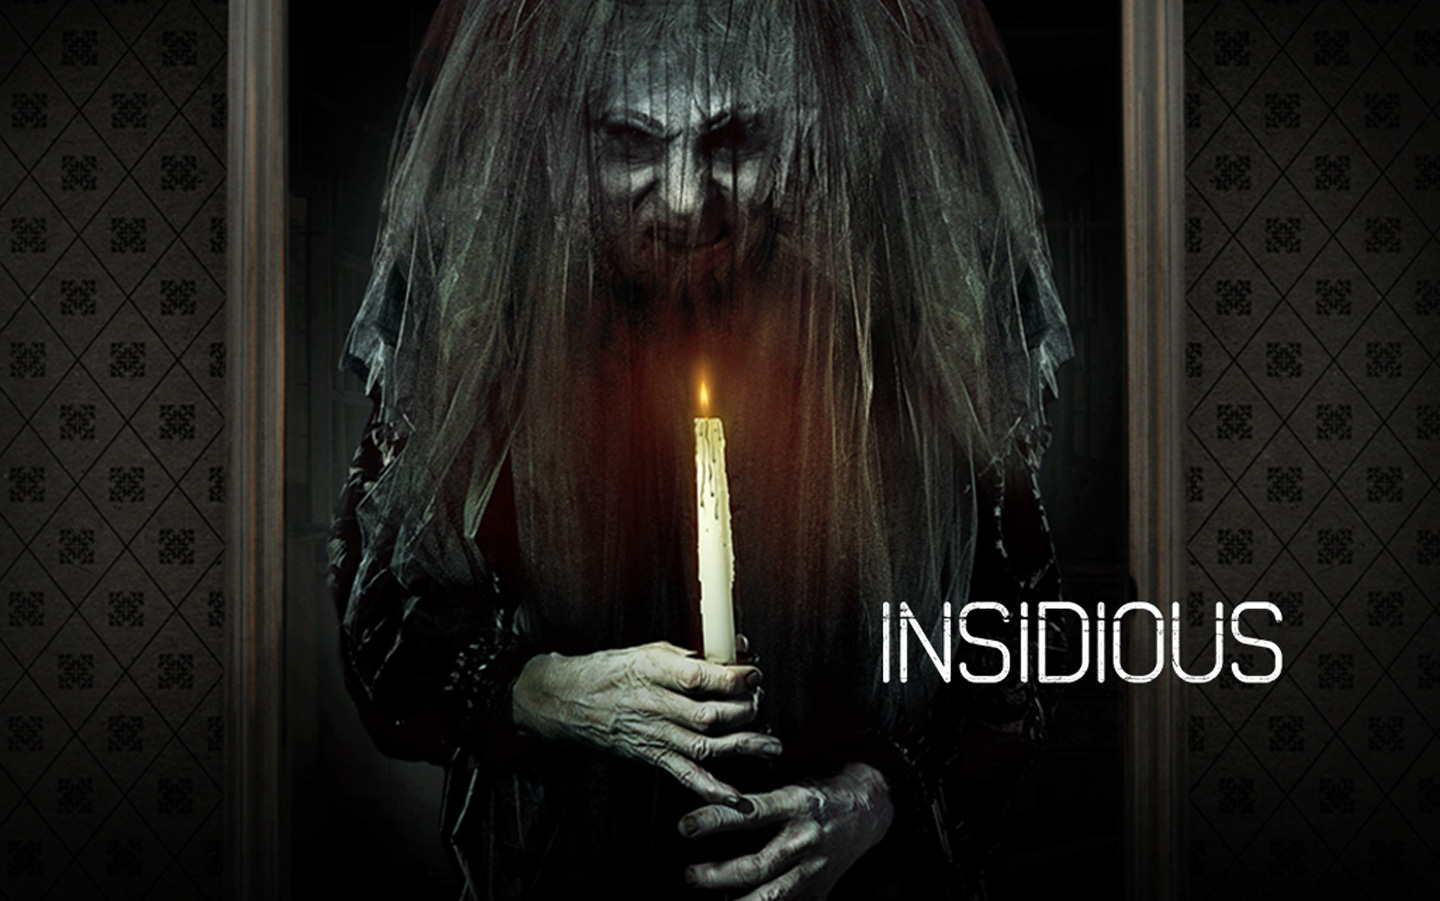 Insidious-featured